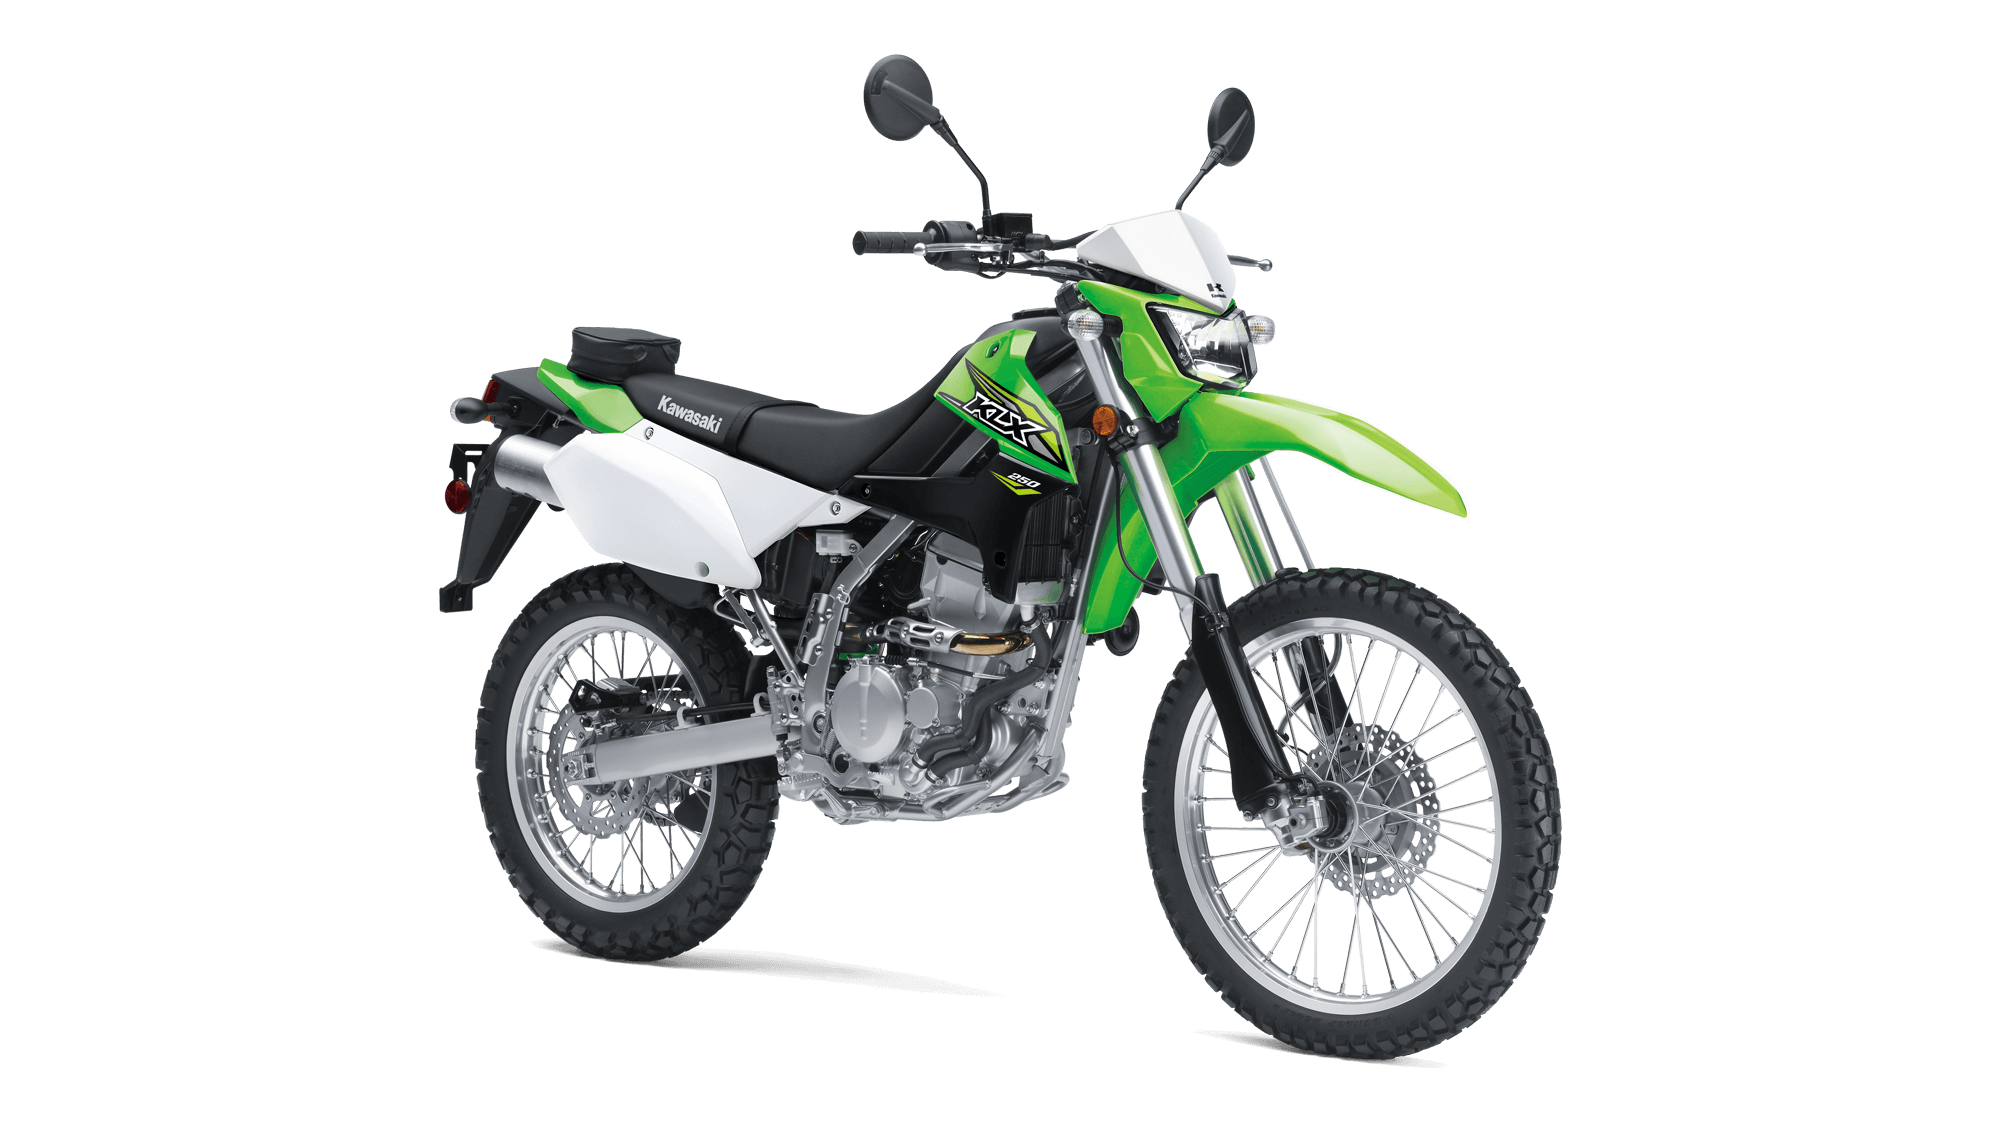 Kawasaki Klx250 Likely To Launch In India At Auto